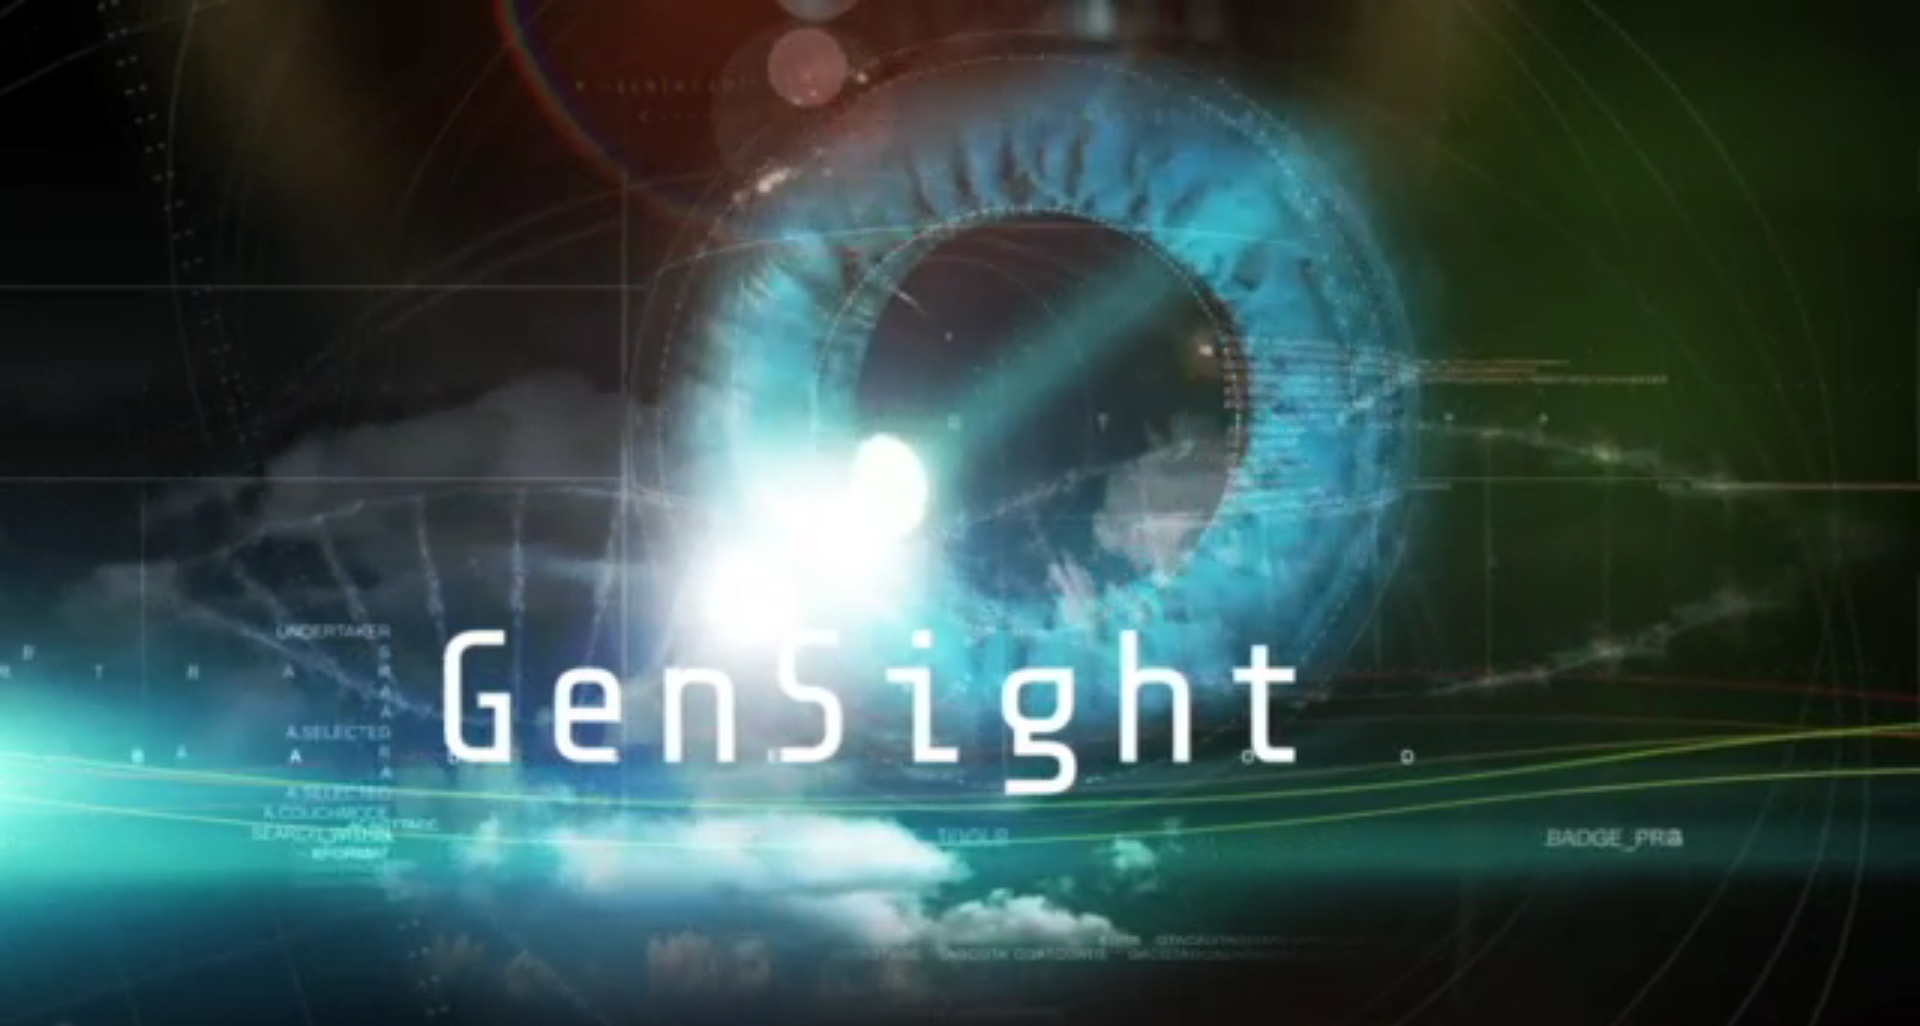 Gensight